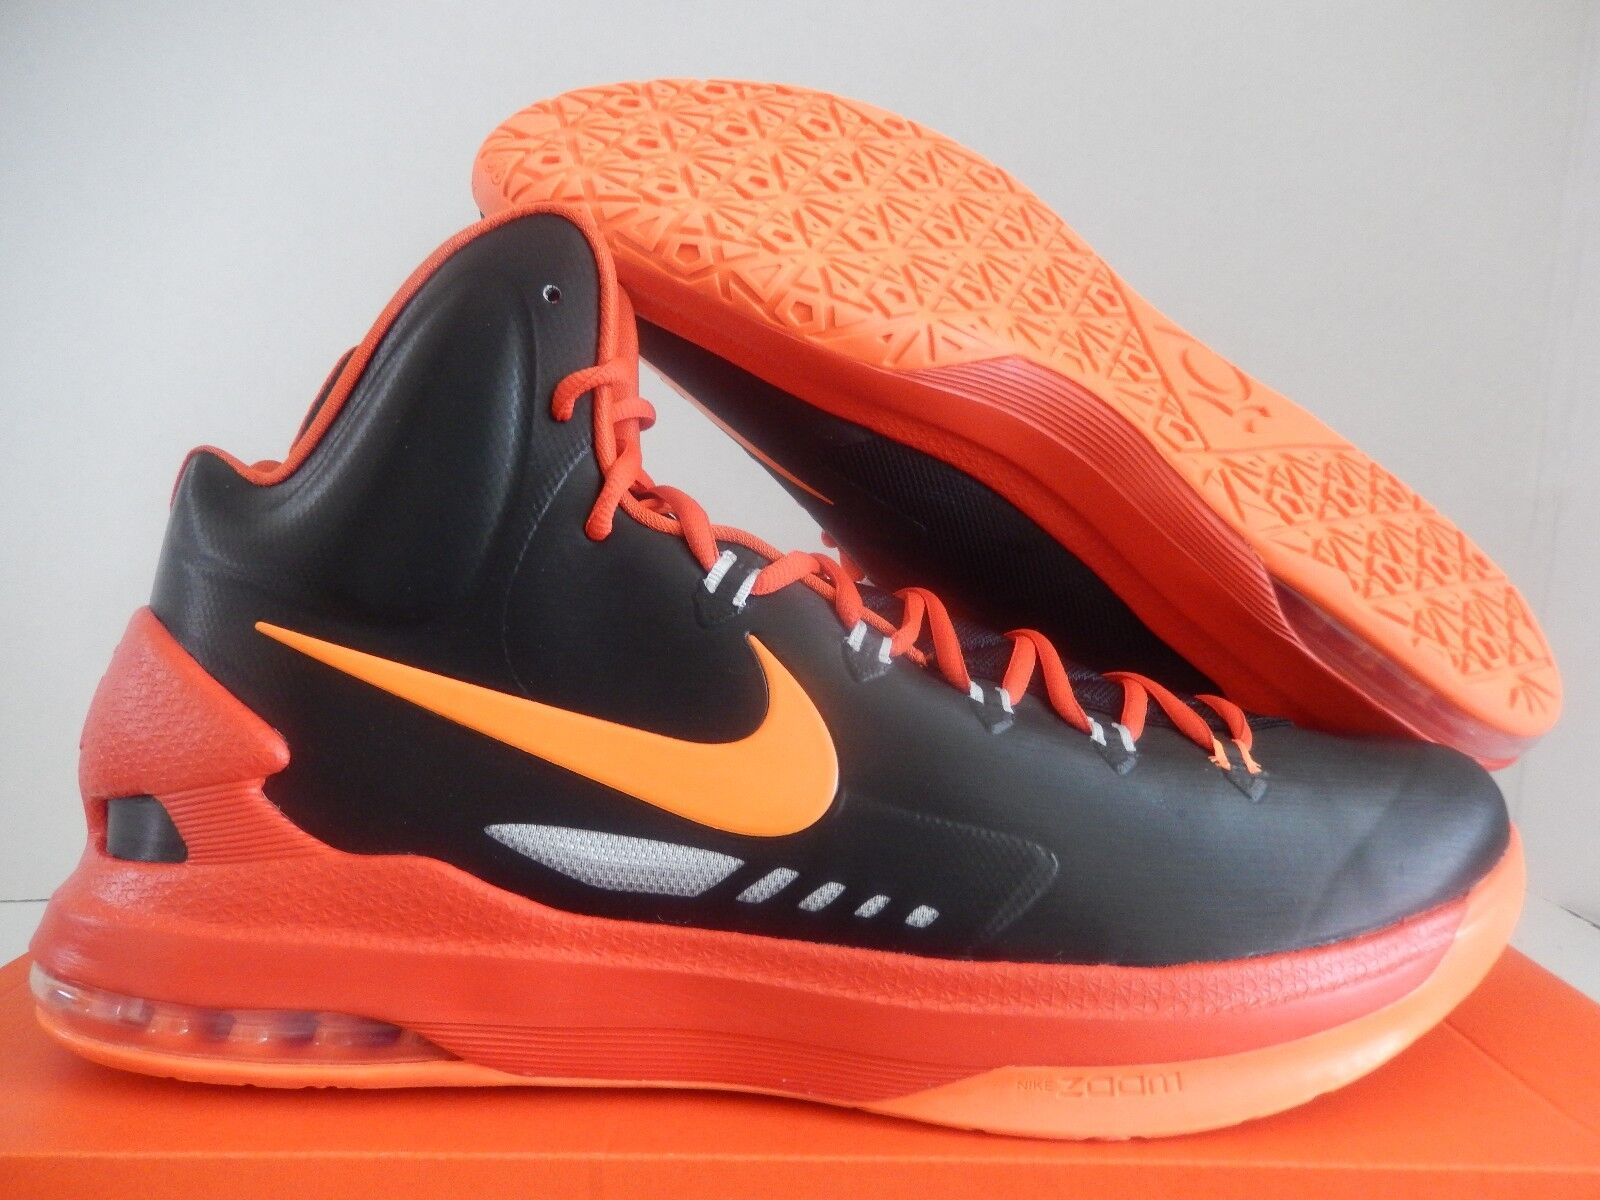 NIKE KD V BLACK-TOTAL ORANGE-TEAM ORANGE-GREY Price reduction